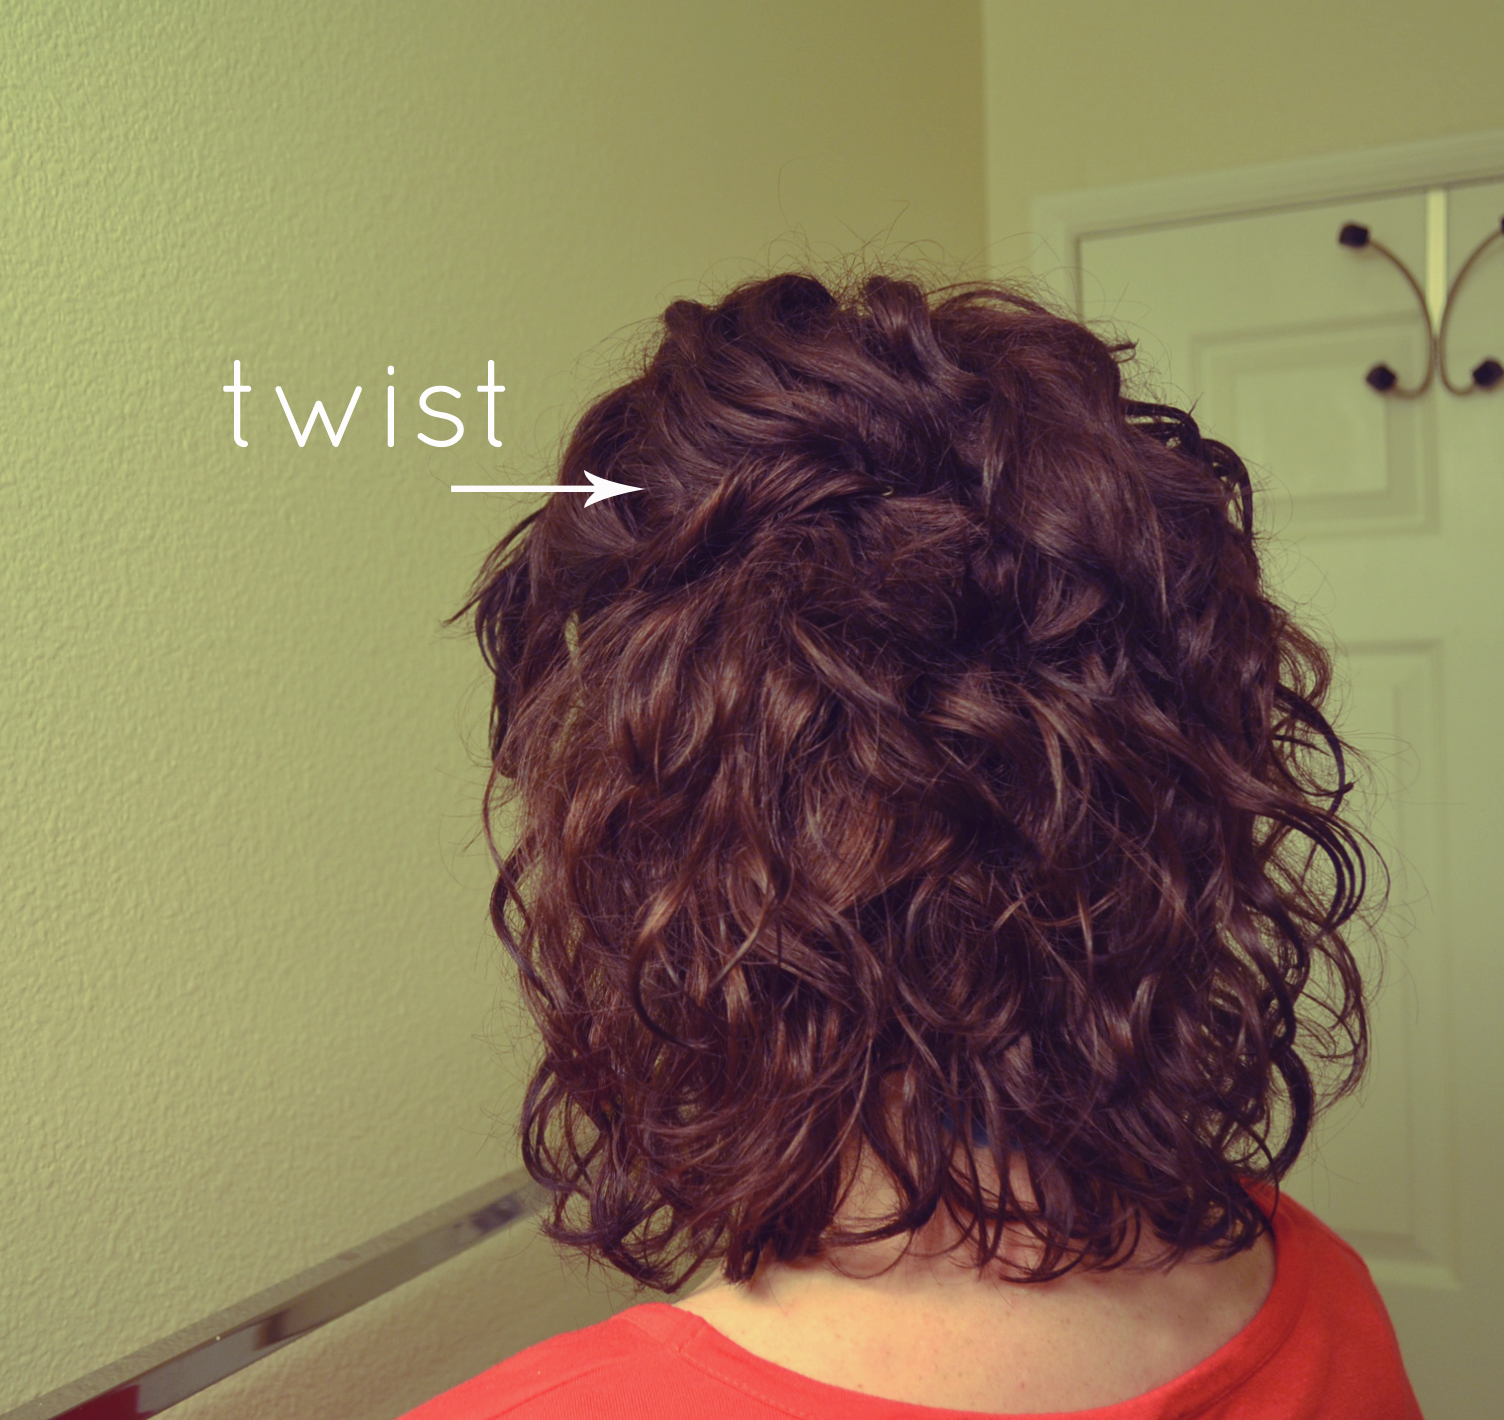 cute ways to style curly hair at home 3 ways to wear a hair bow and not look like a baby 2757 | DSC 0067 copy